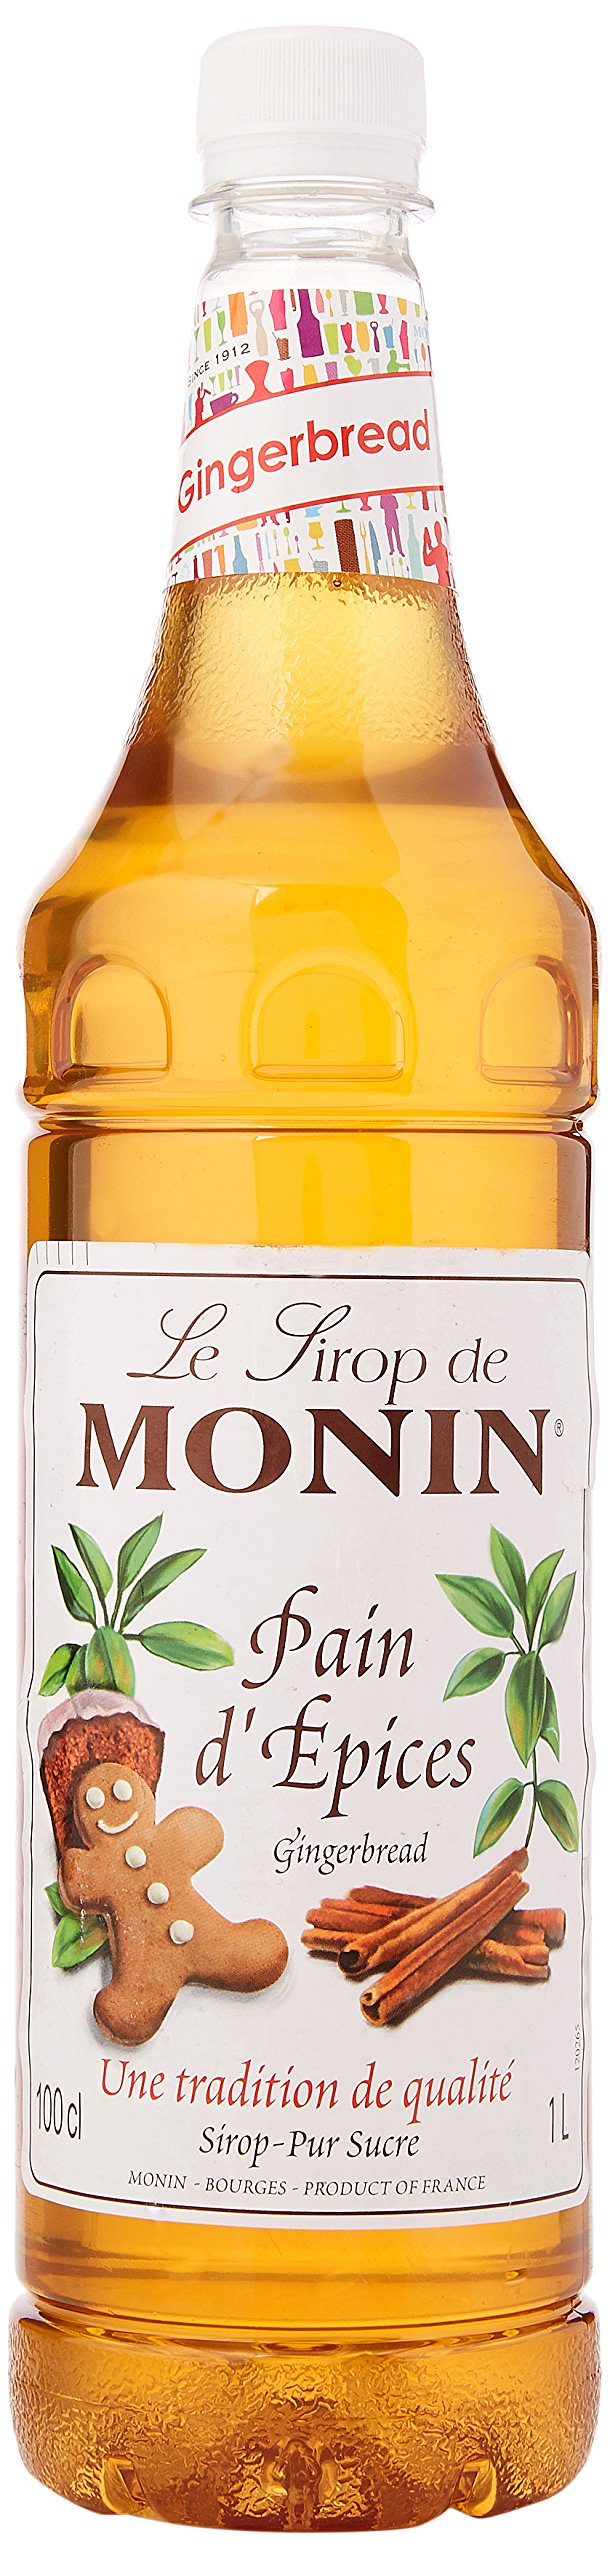 Monin-Premium-Gingerbread-Syrup-1L